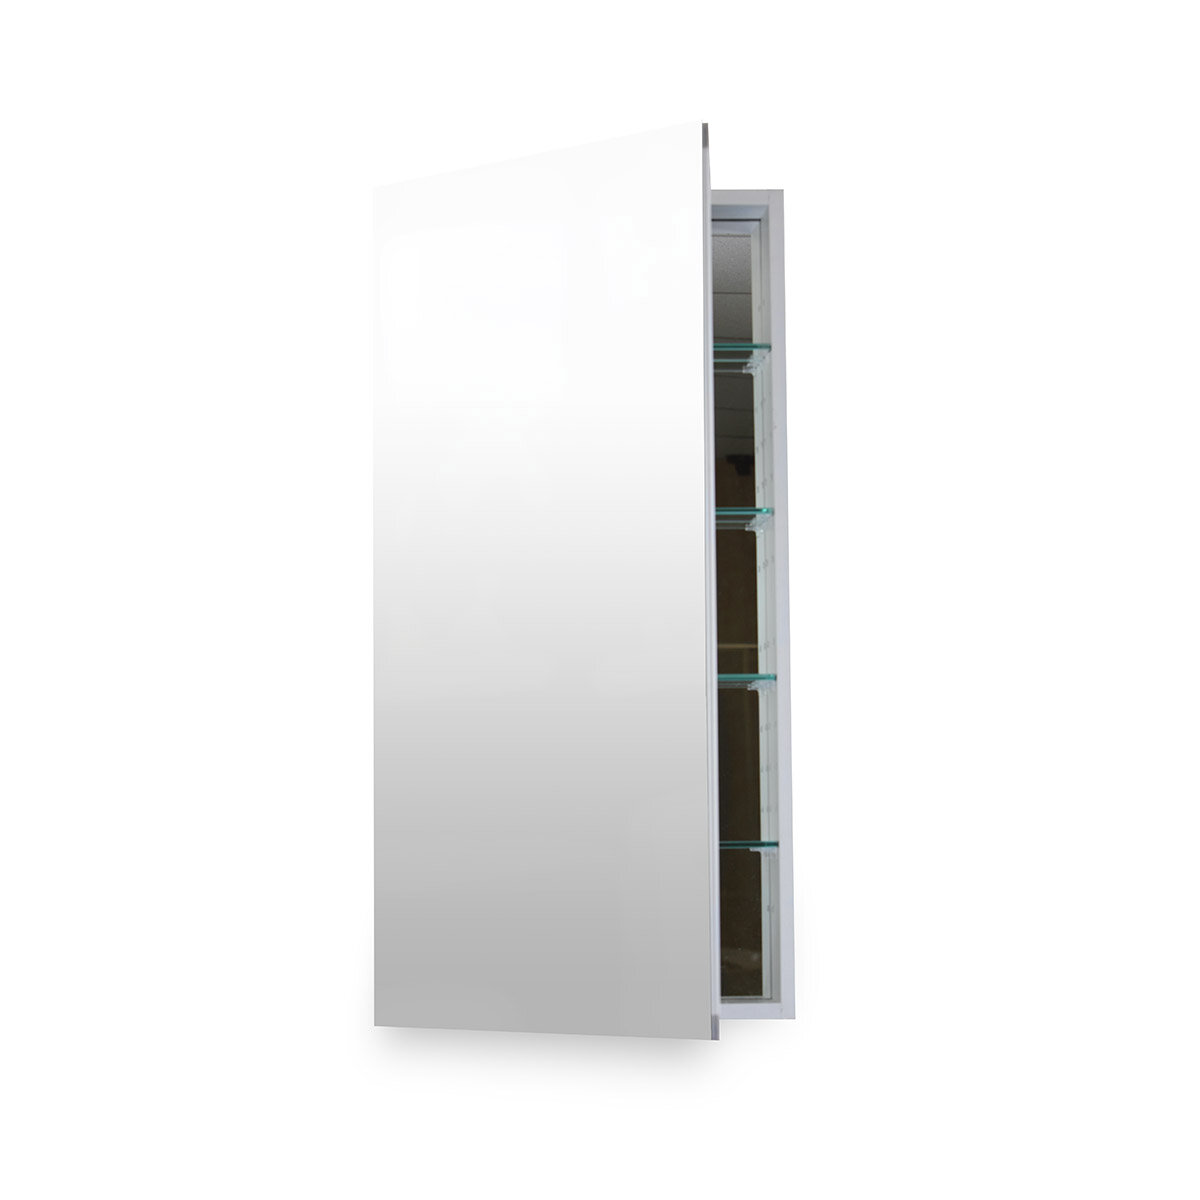 Flawmc 2440 Contemporary 24 X 40 Surface Mount Or Recessed Medicine Cabinet